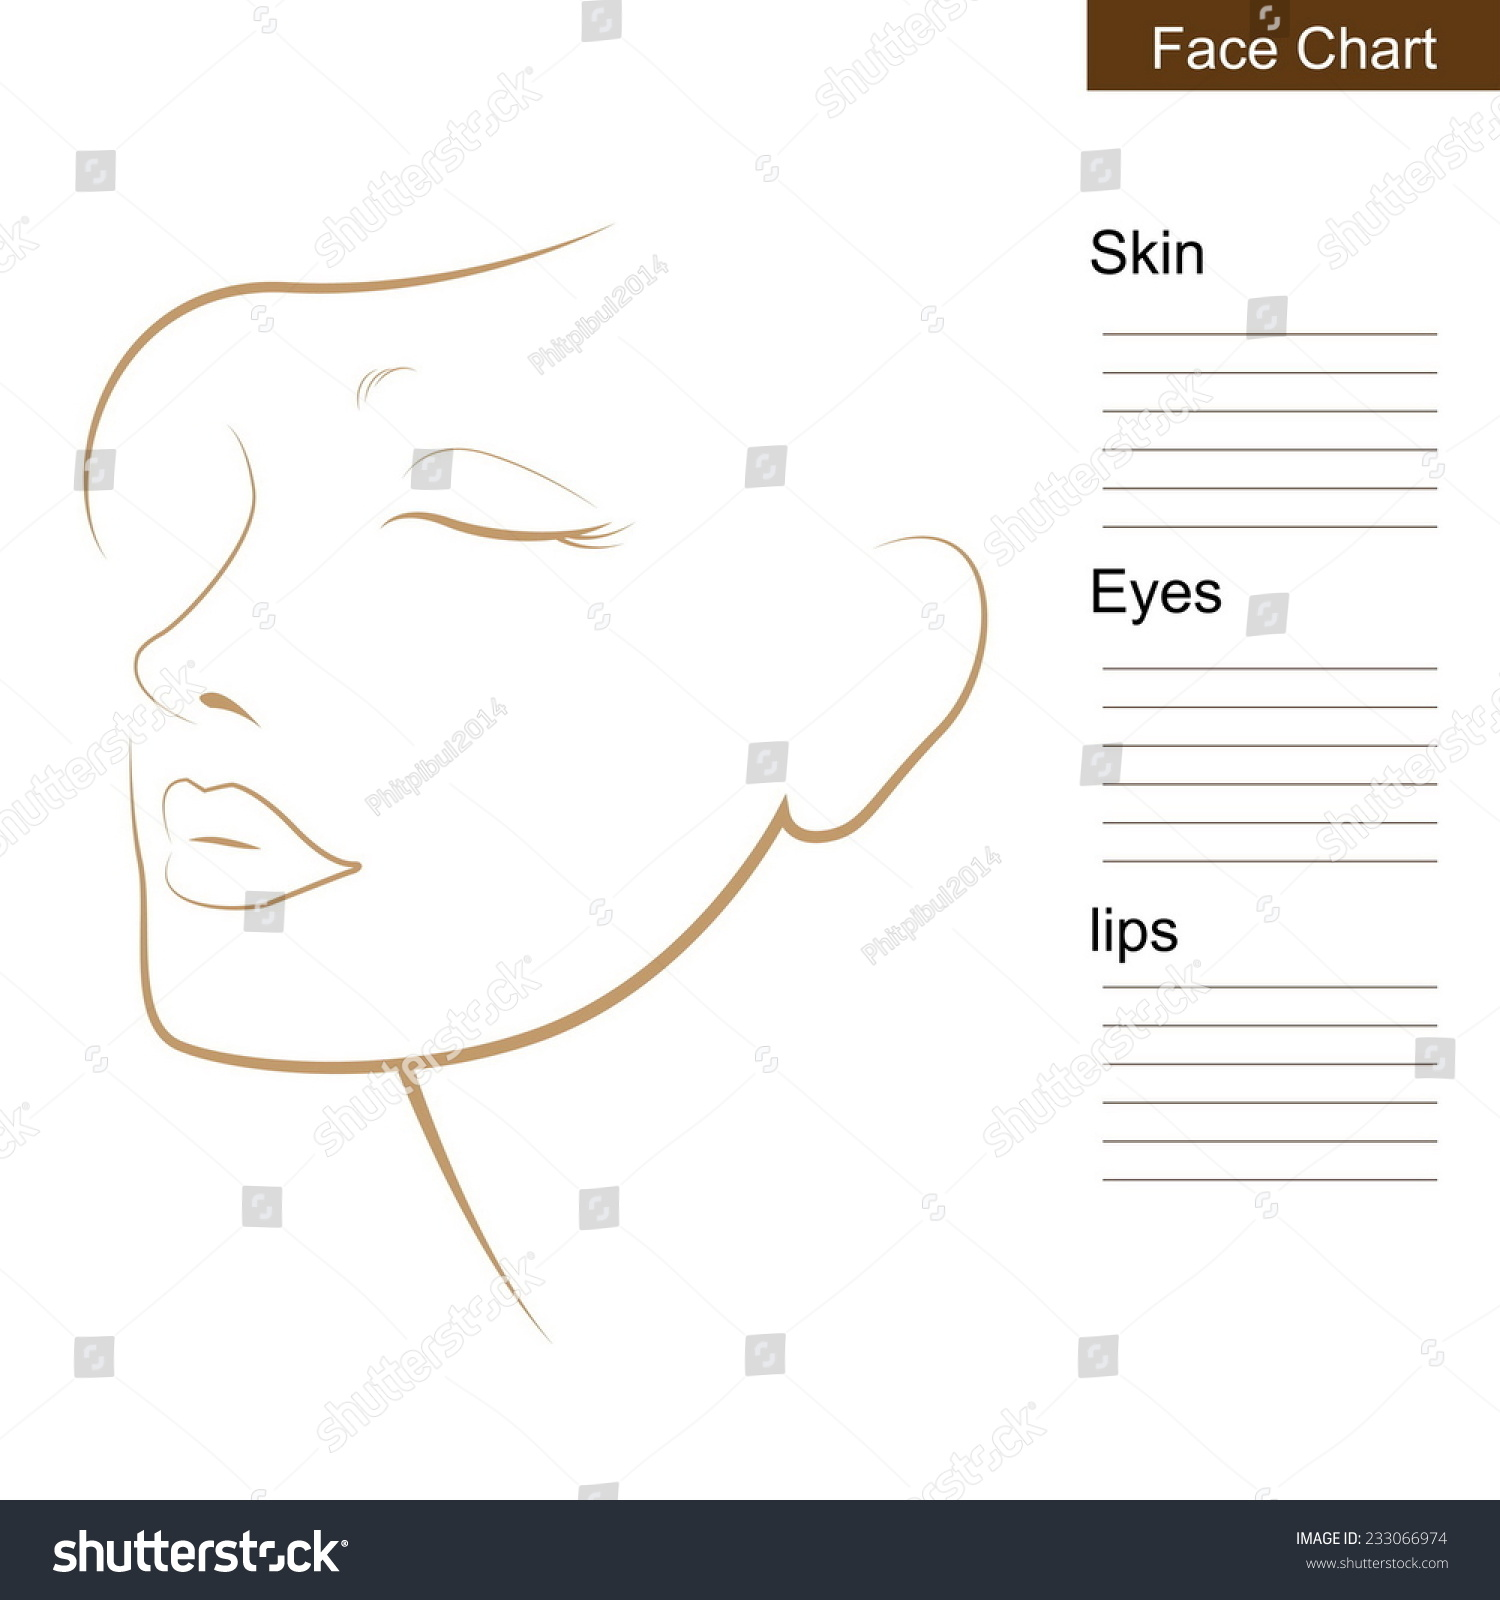 Makeup Vectors Photos and PSD files  Free Download